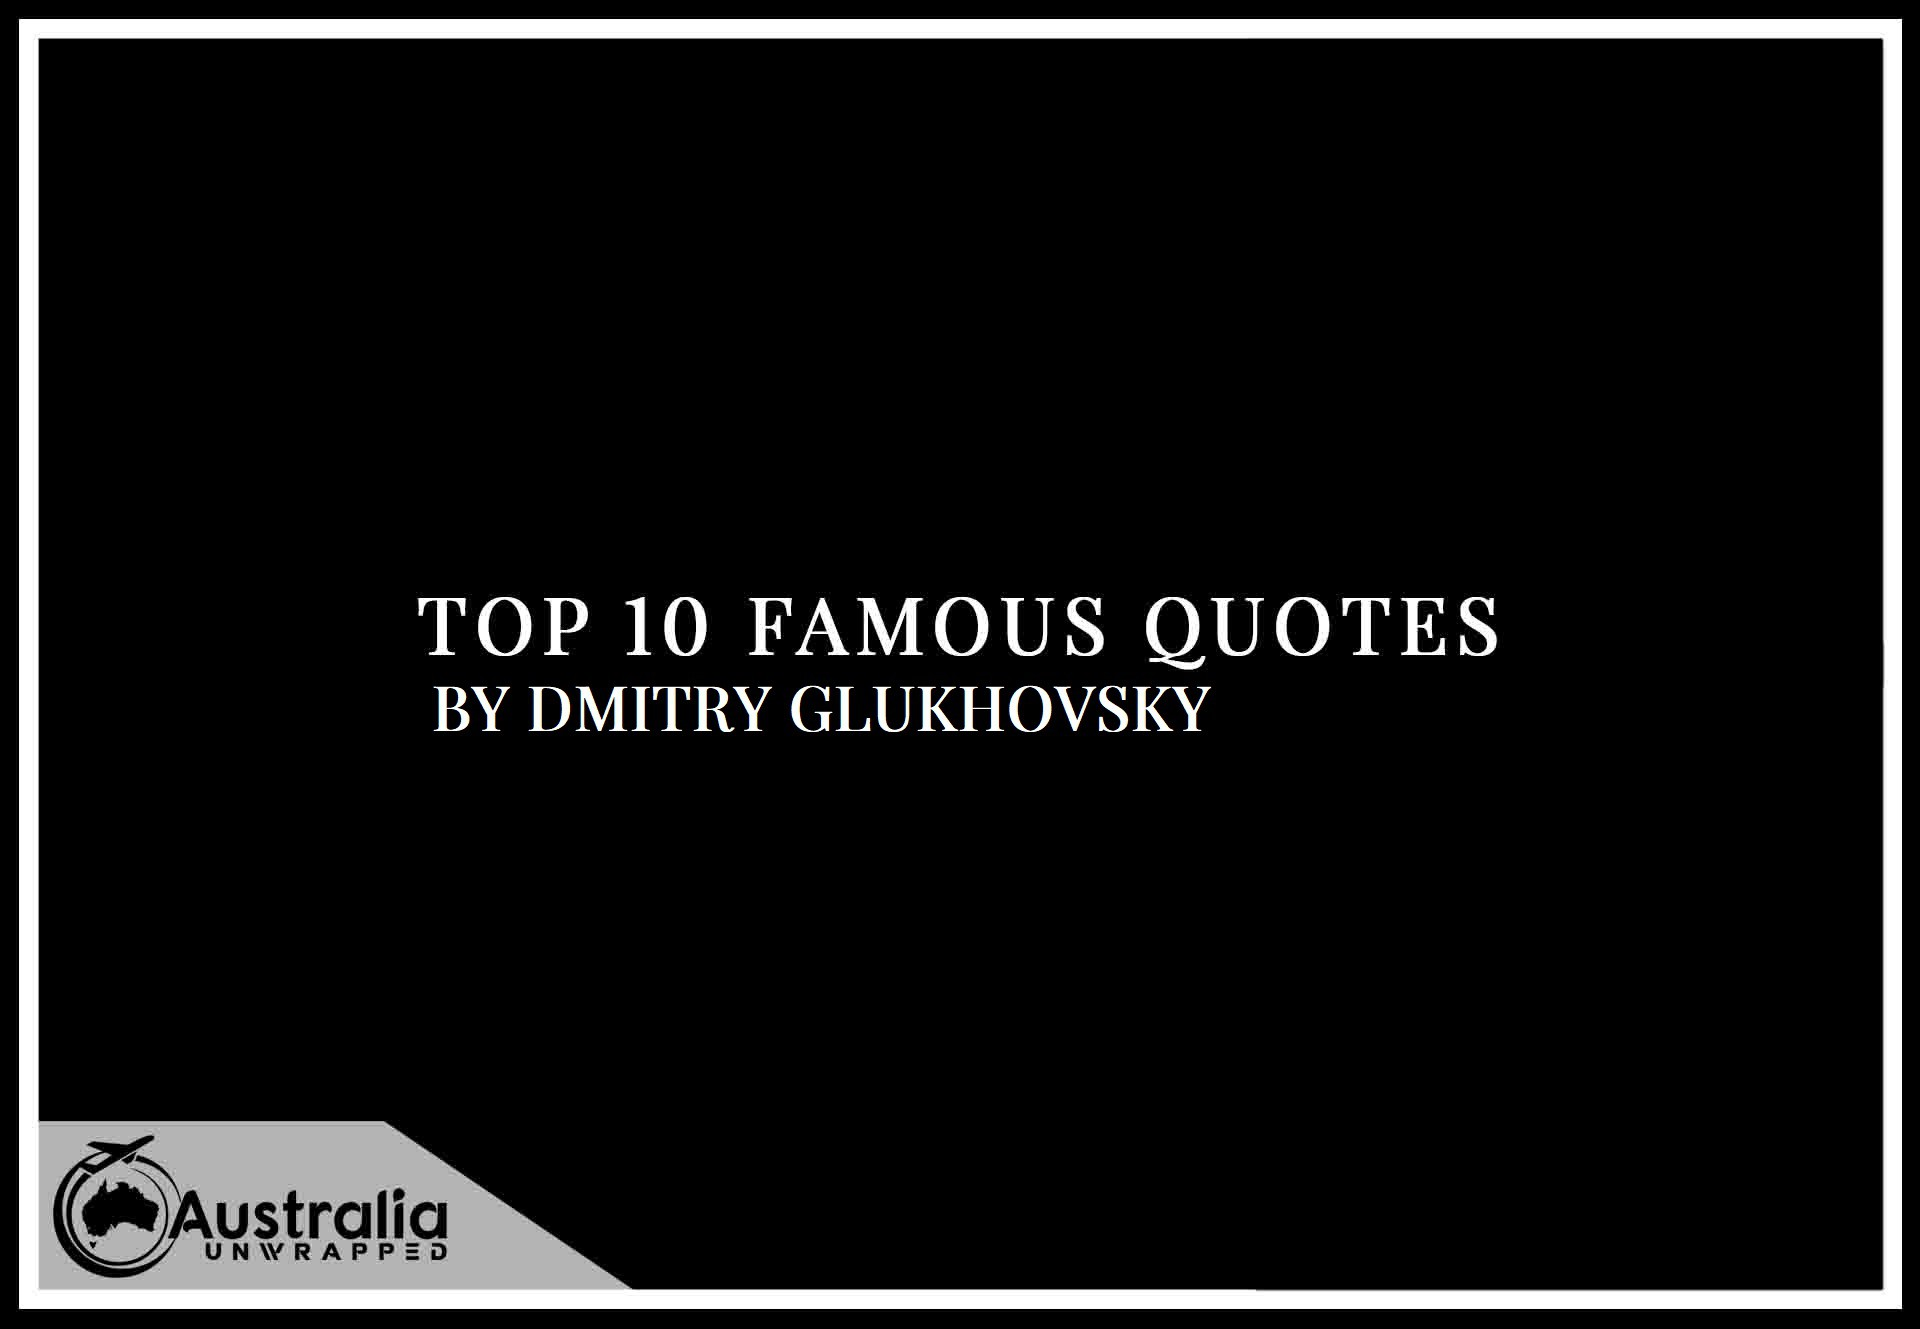 Top 10 Famous Quotes by Author Dmitry Glukhovsky